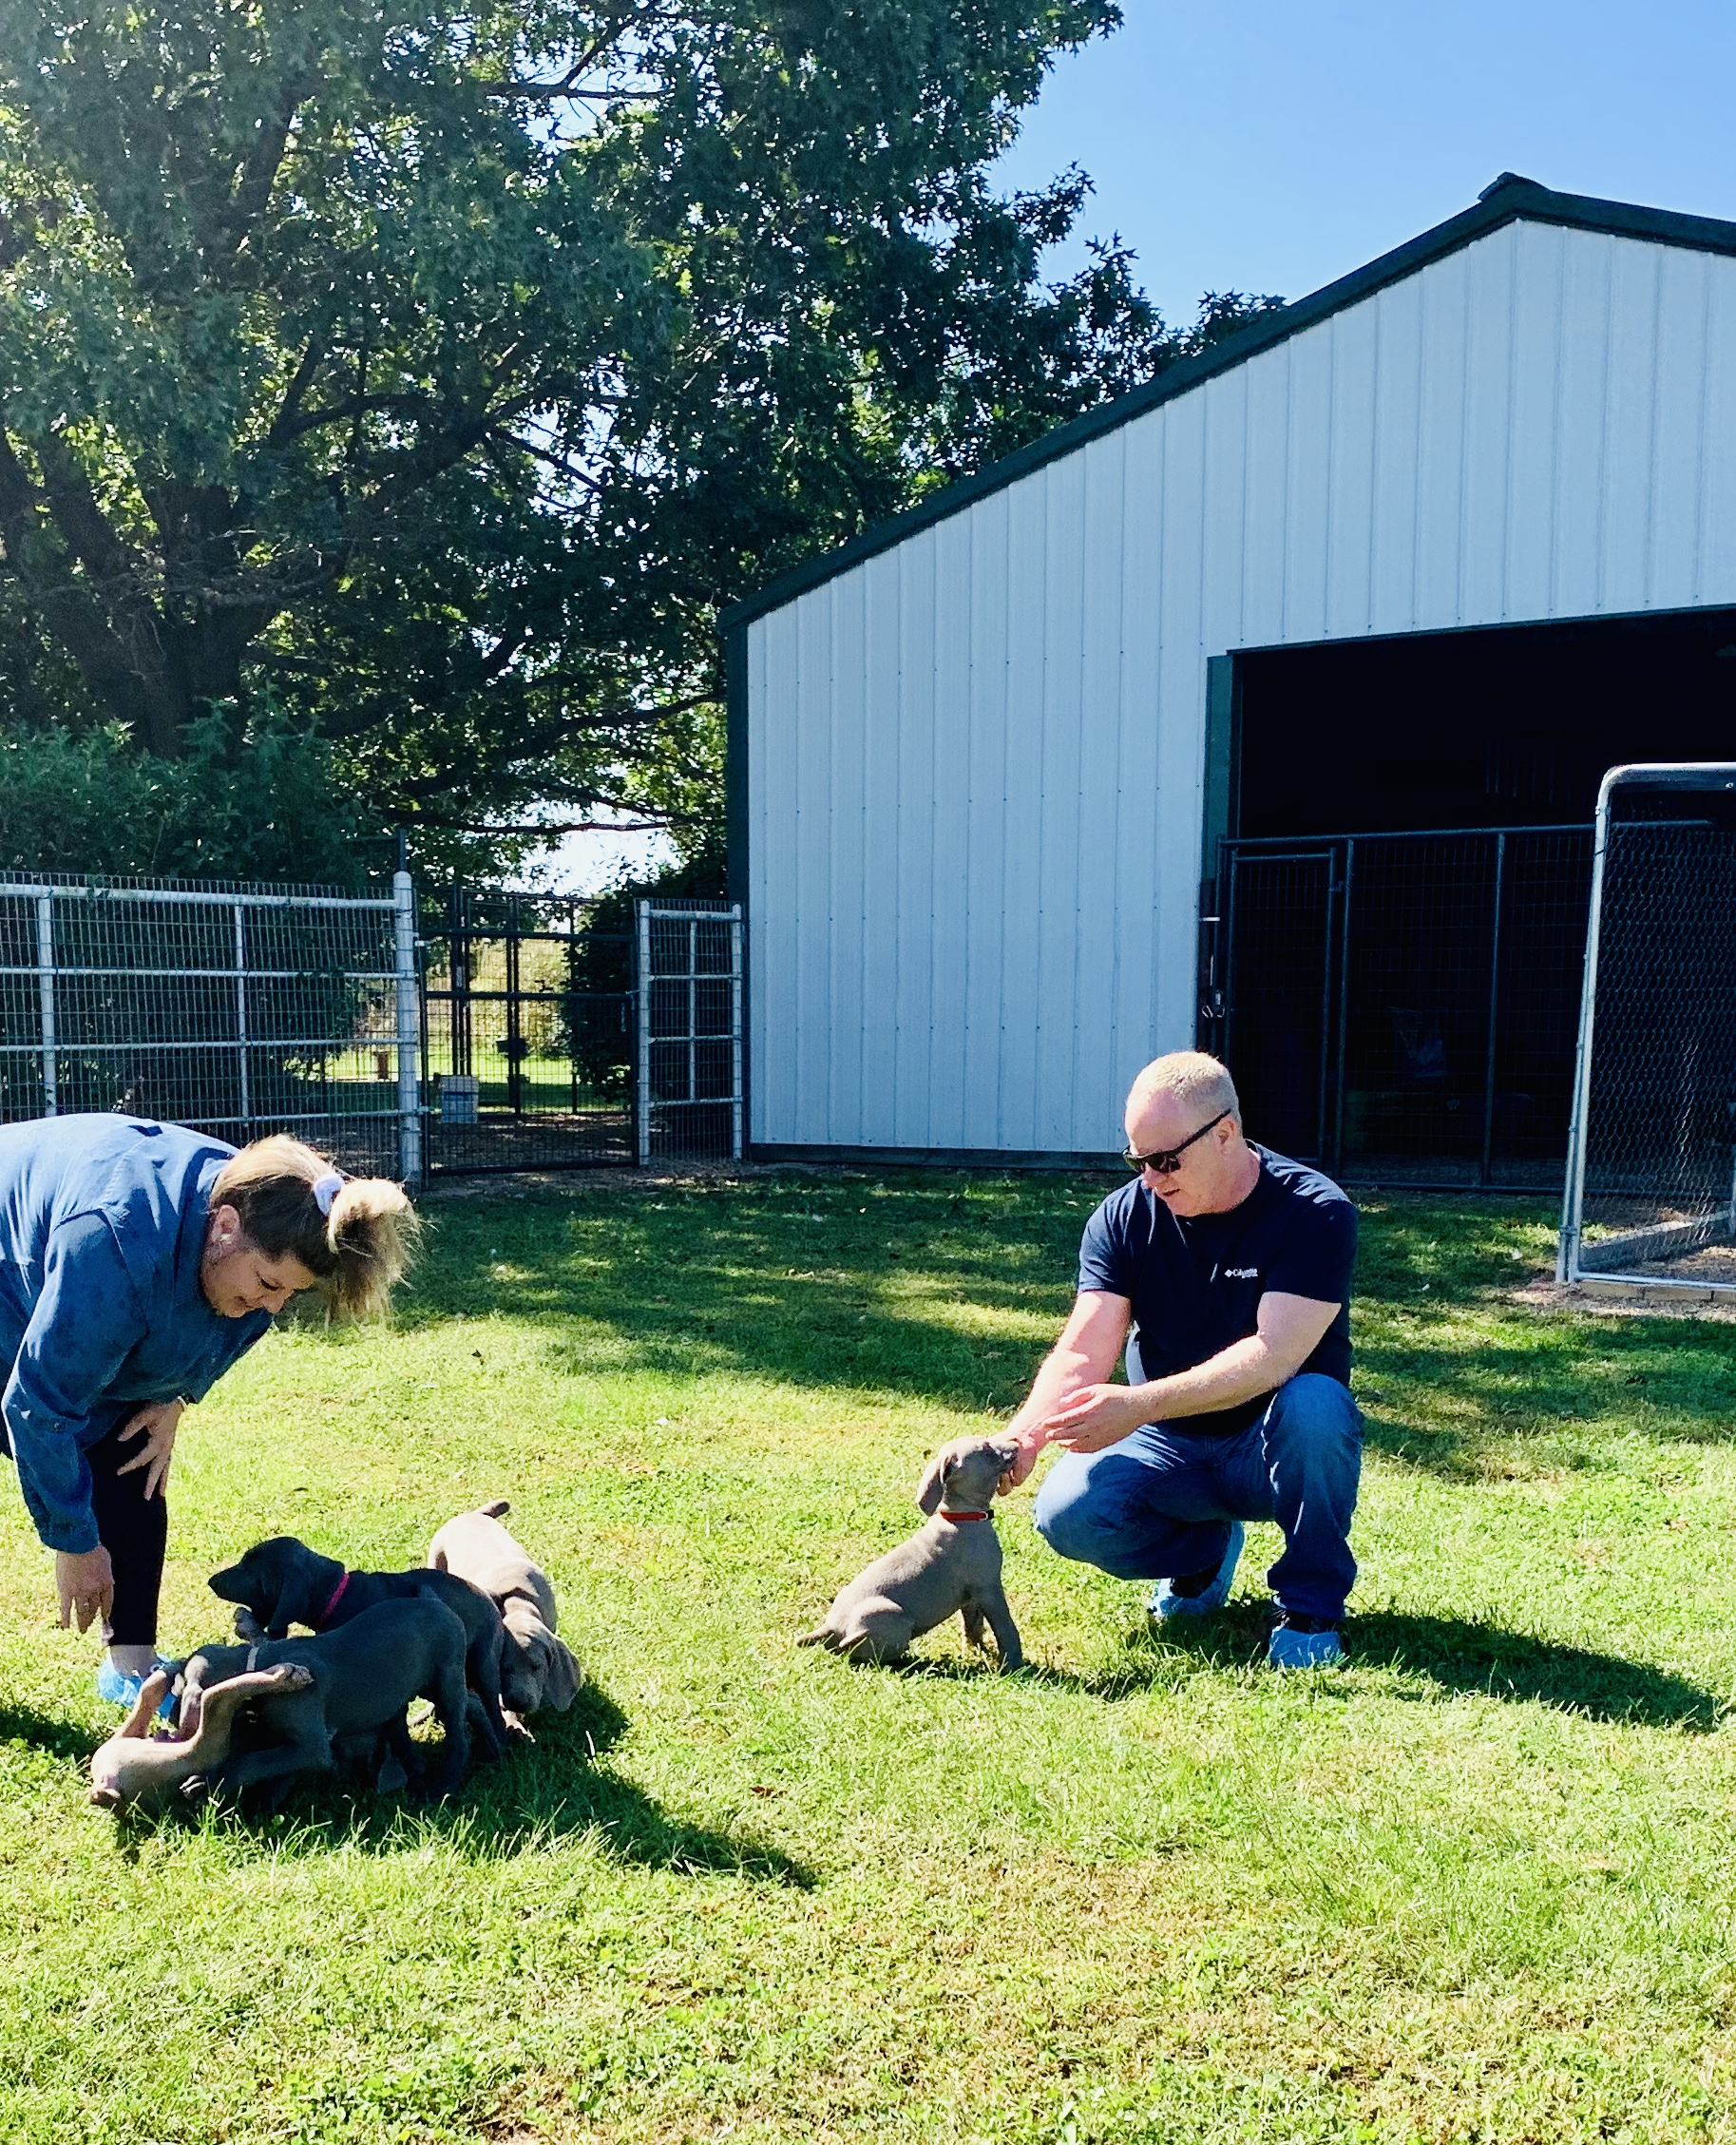 CPI owner and employee play with a group of Cindy's puppies